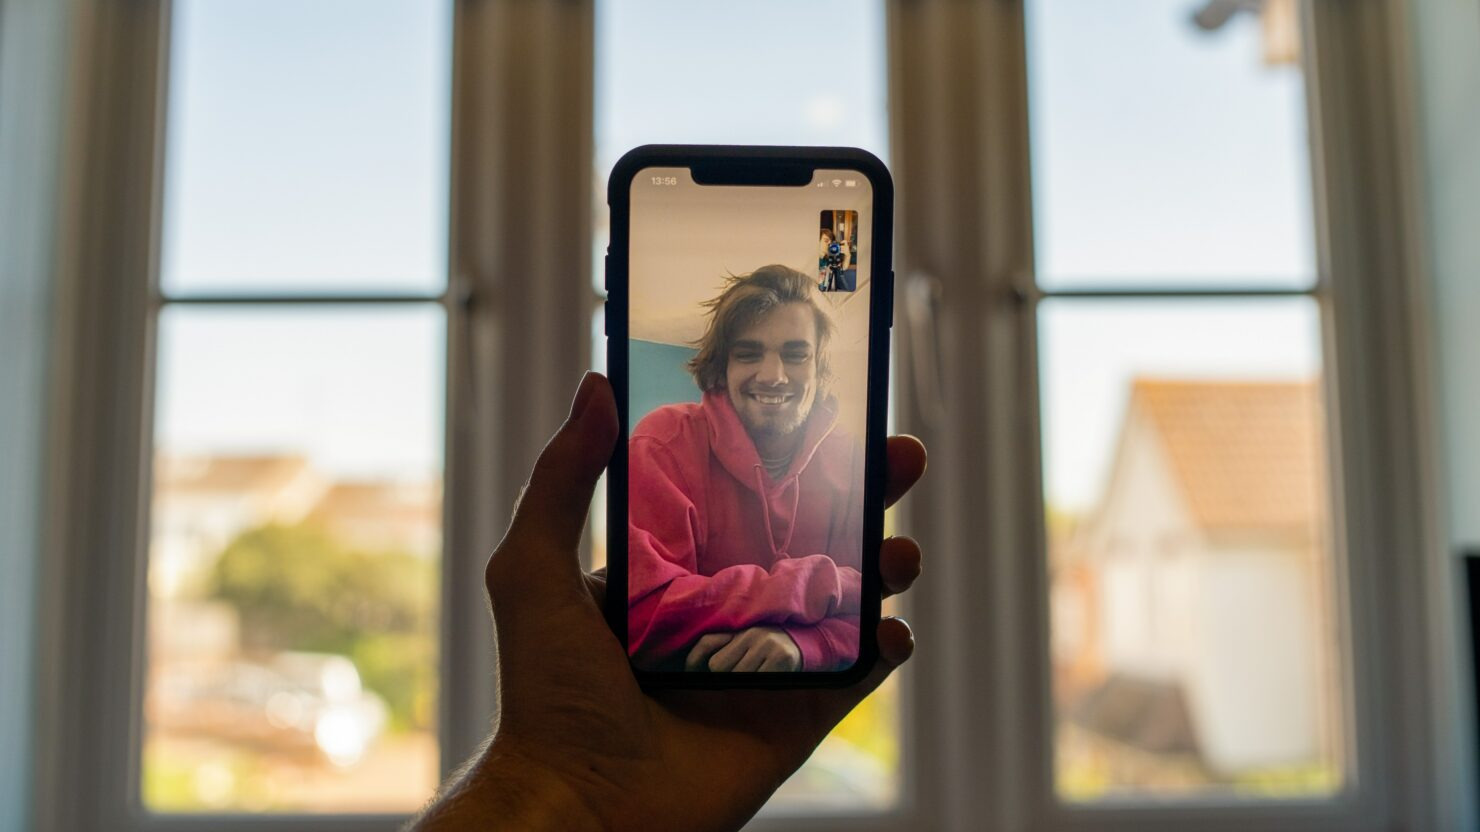 Apple Picked the Worst Looking Android Phone to Showcase FaceTime Links